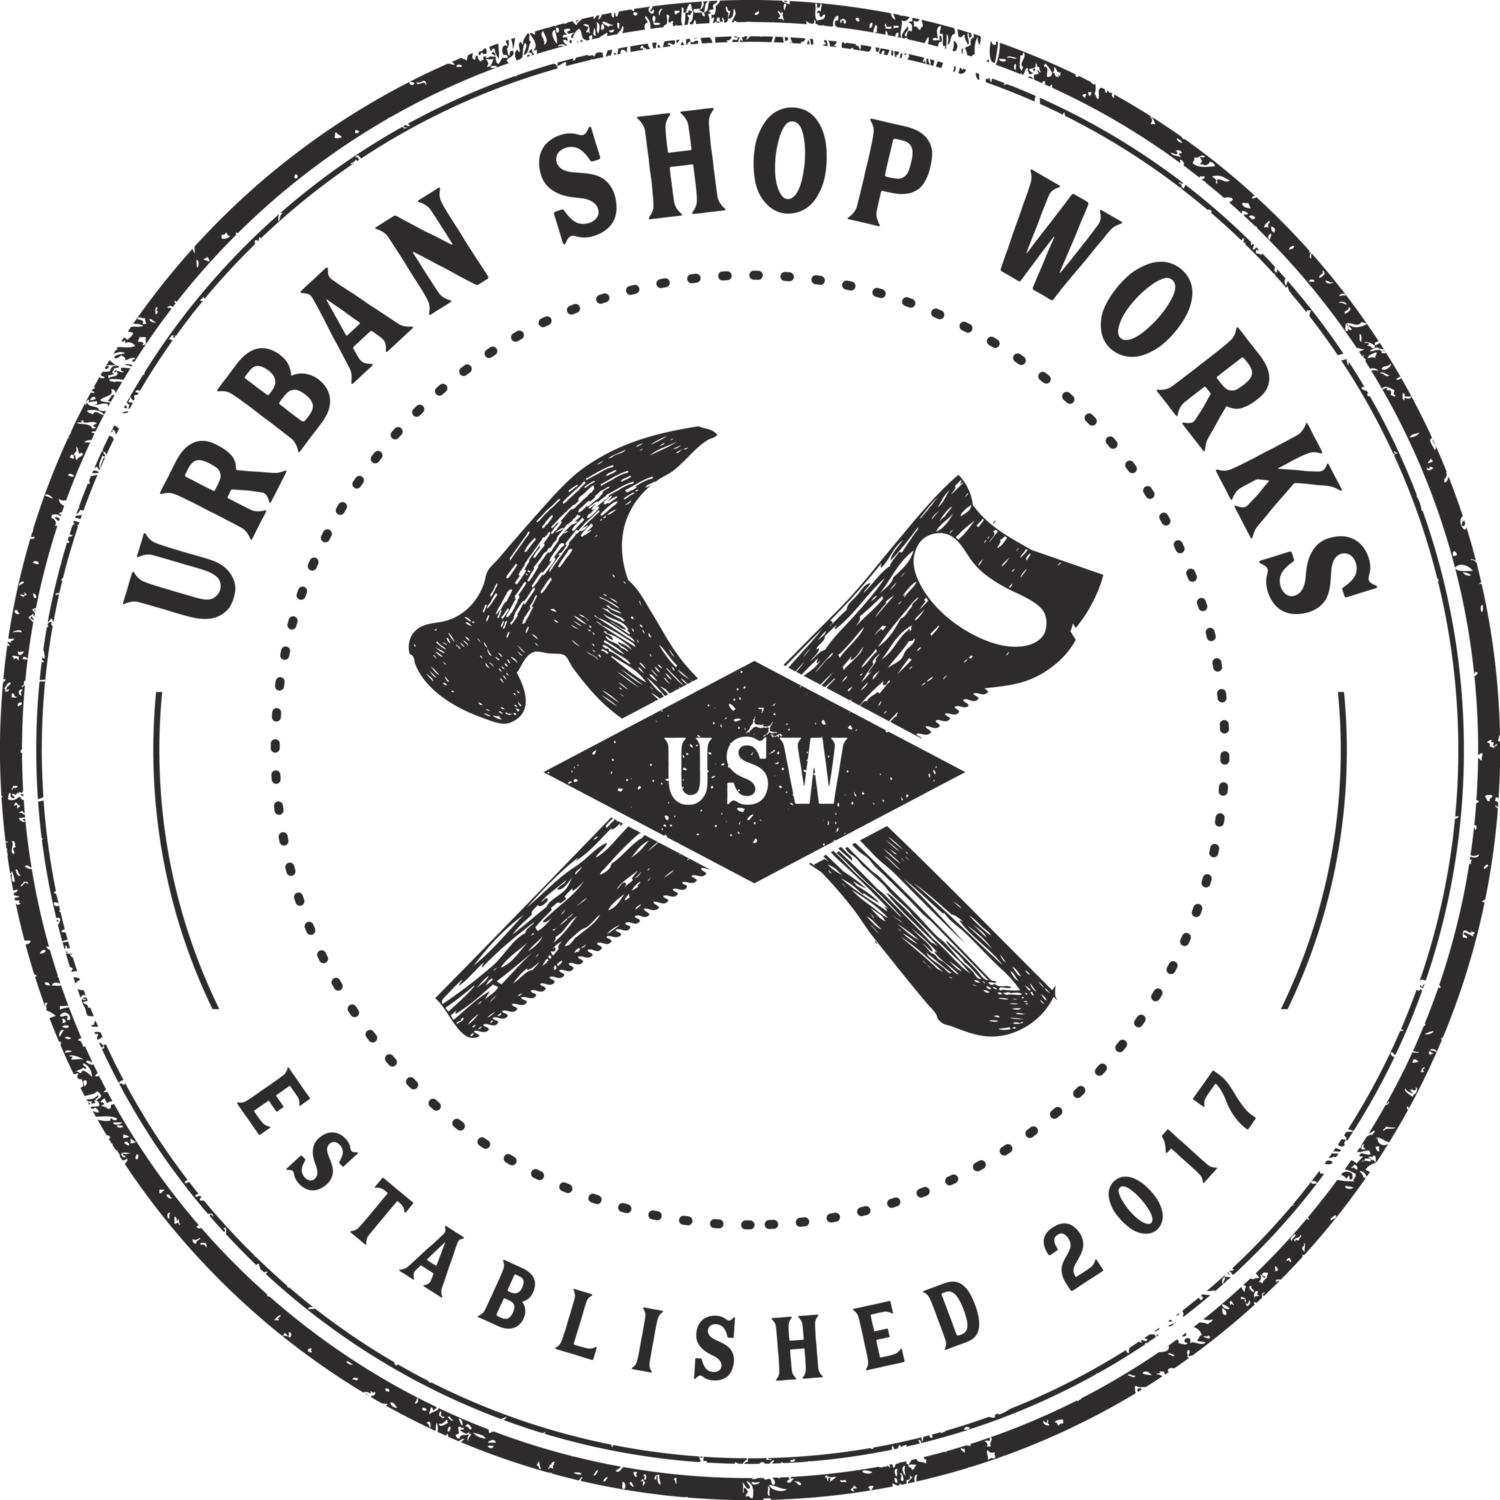 Urban Shop Works